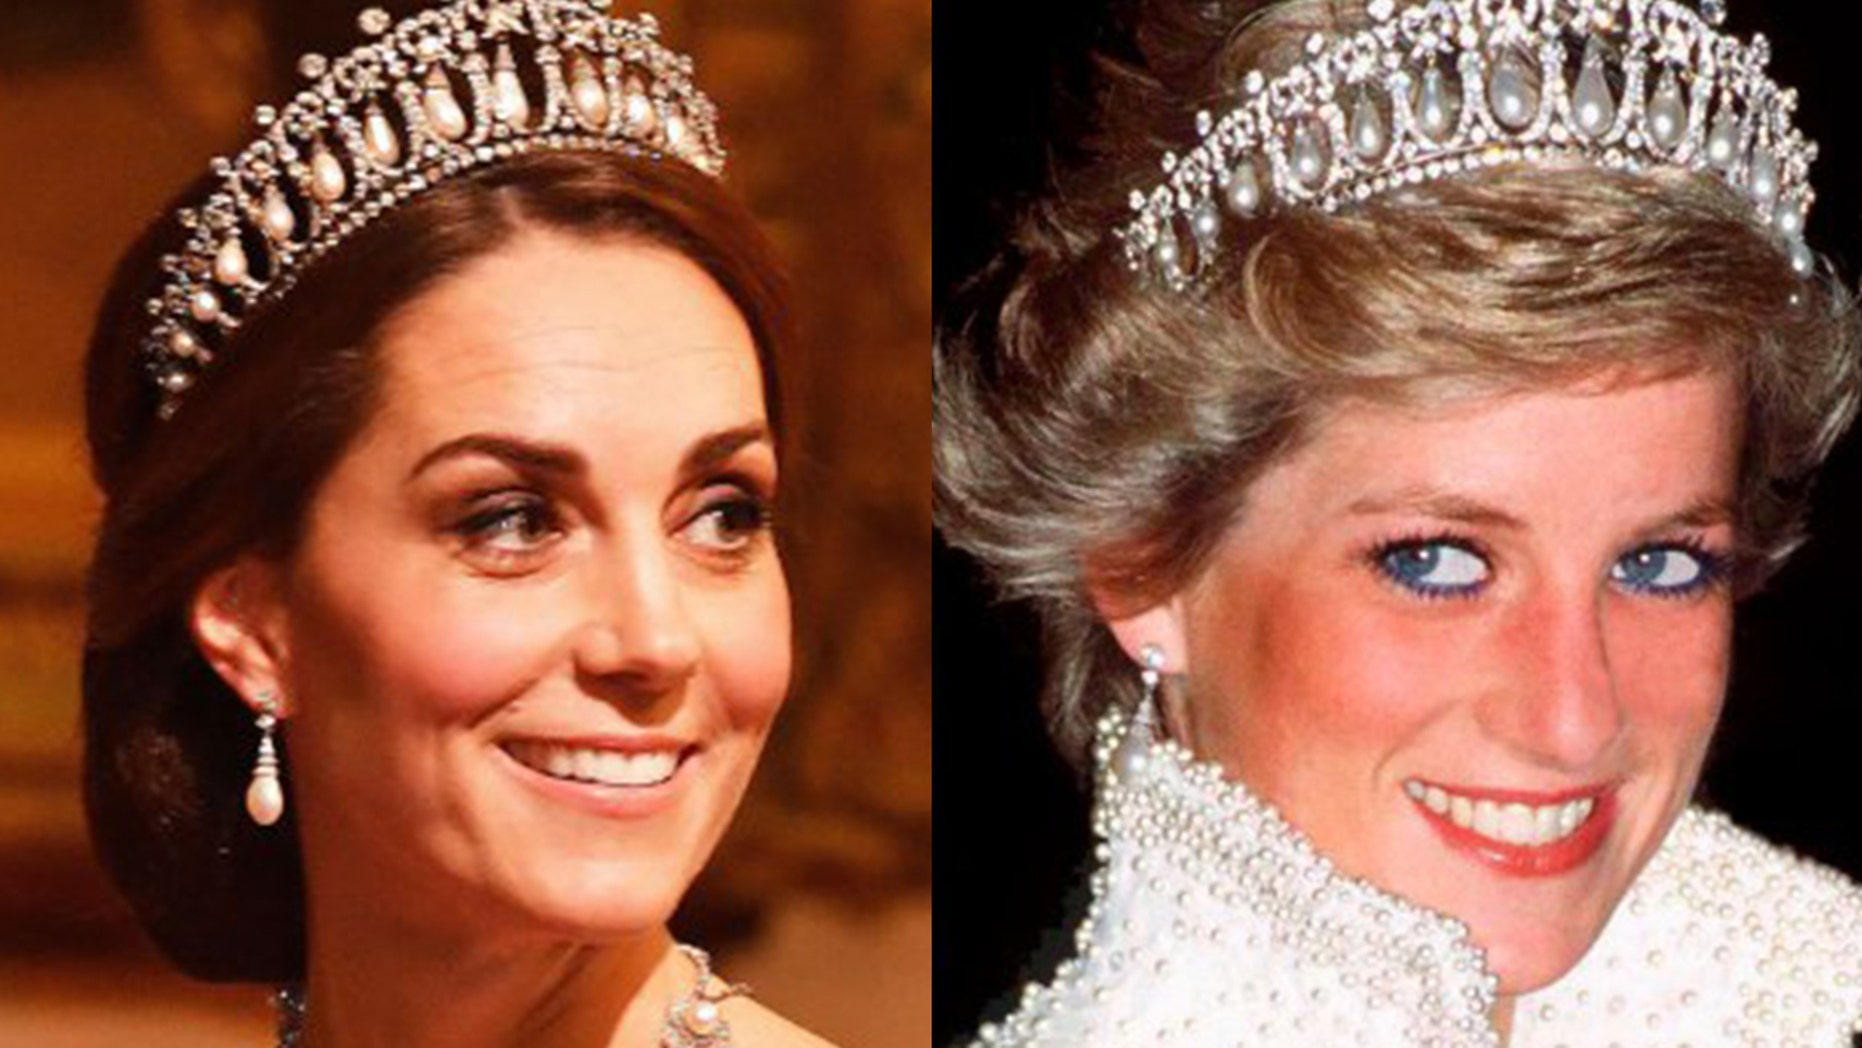 Kate Middleton dons Princess Diana's famous lovers knot tiara while at a Buckingham Palace banquet on Tuesday night.